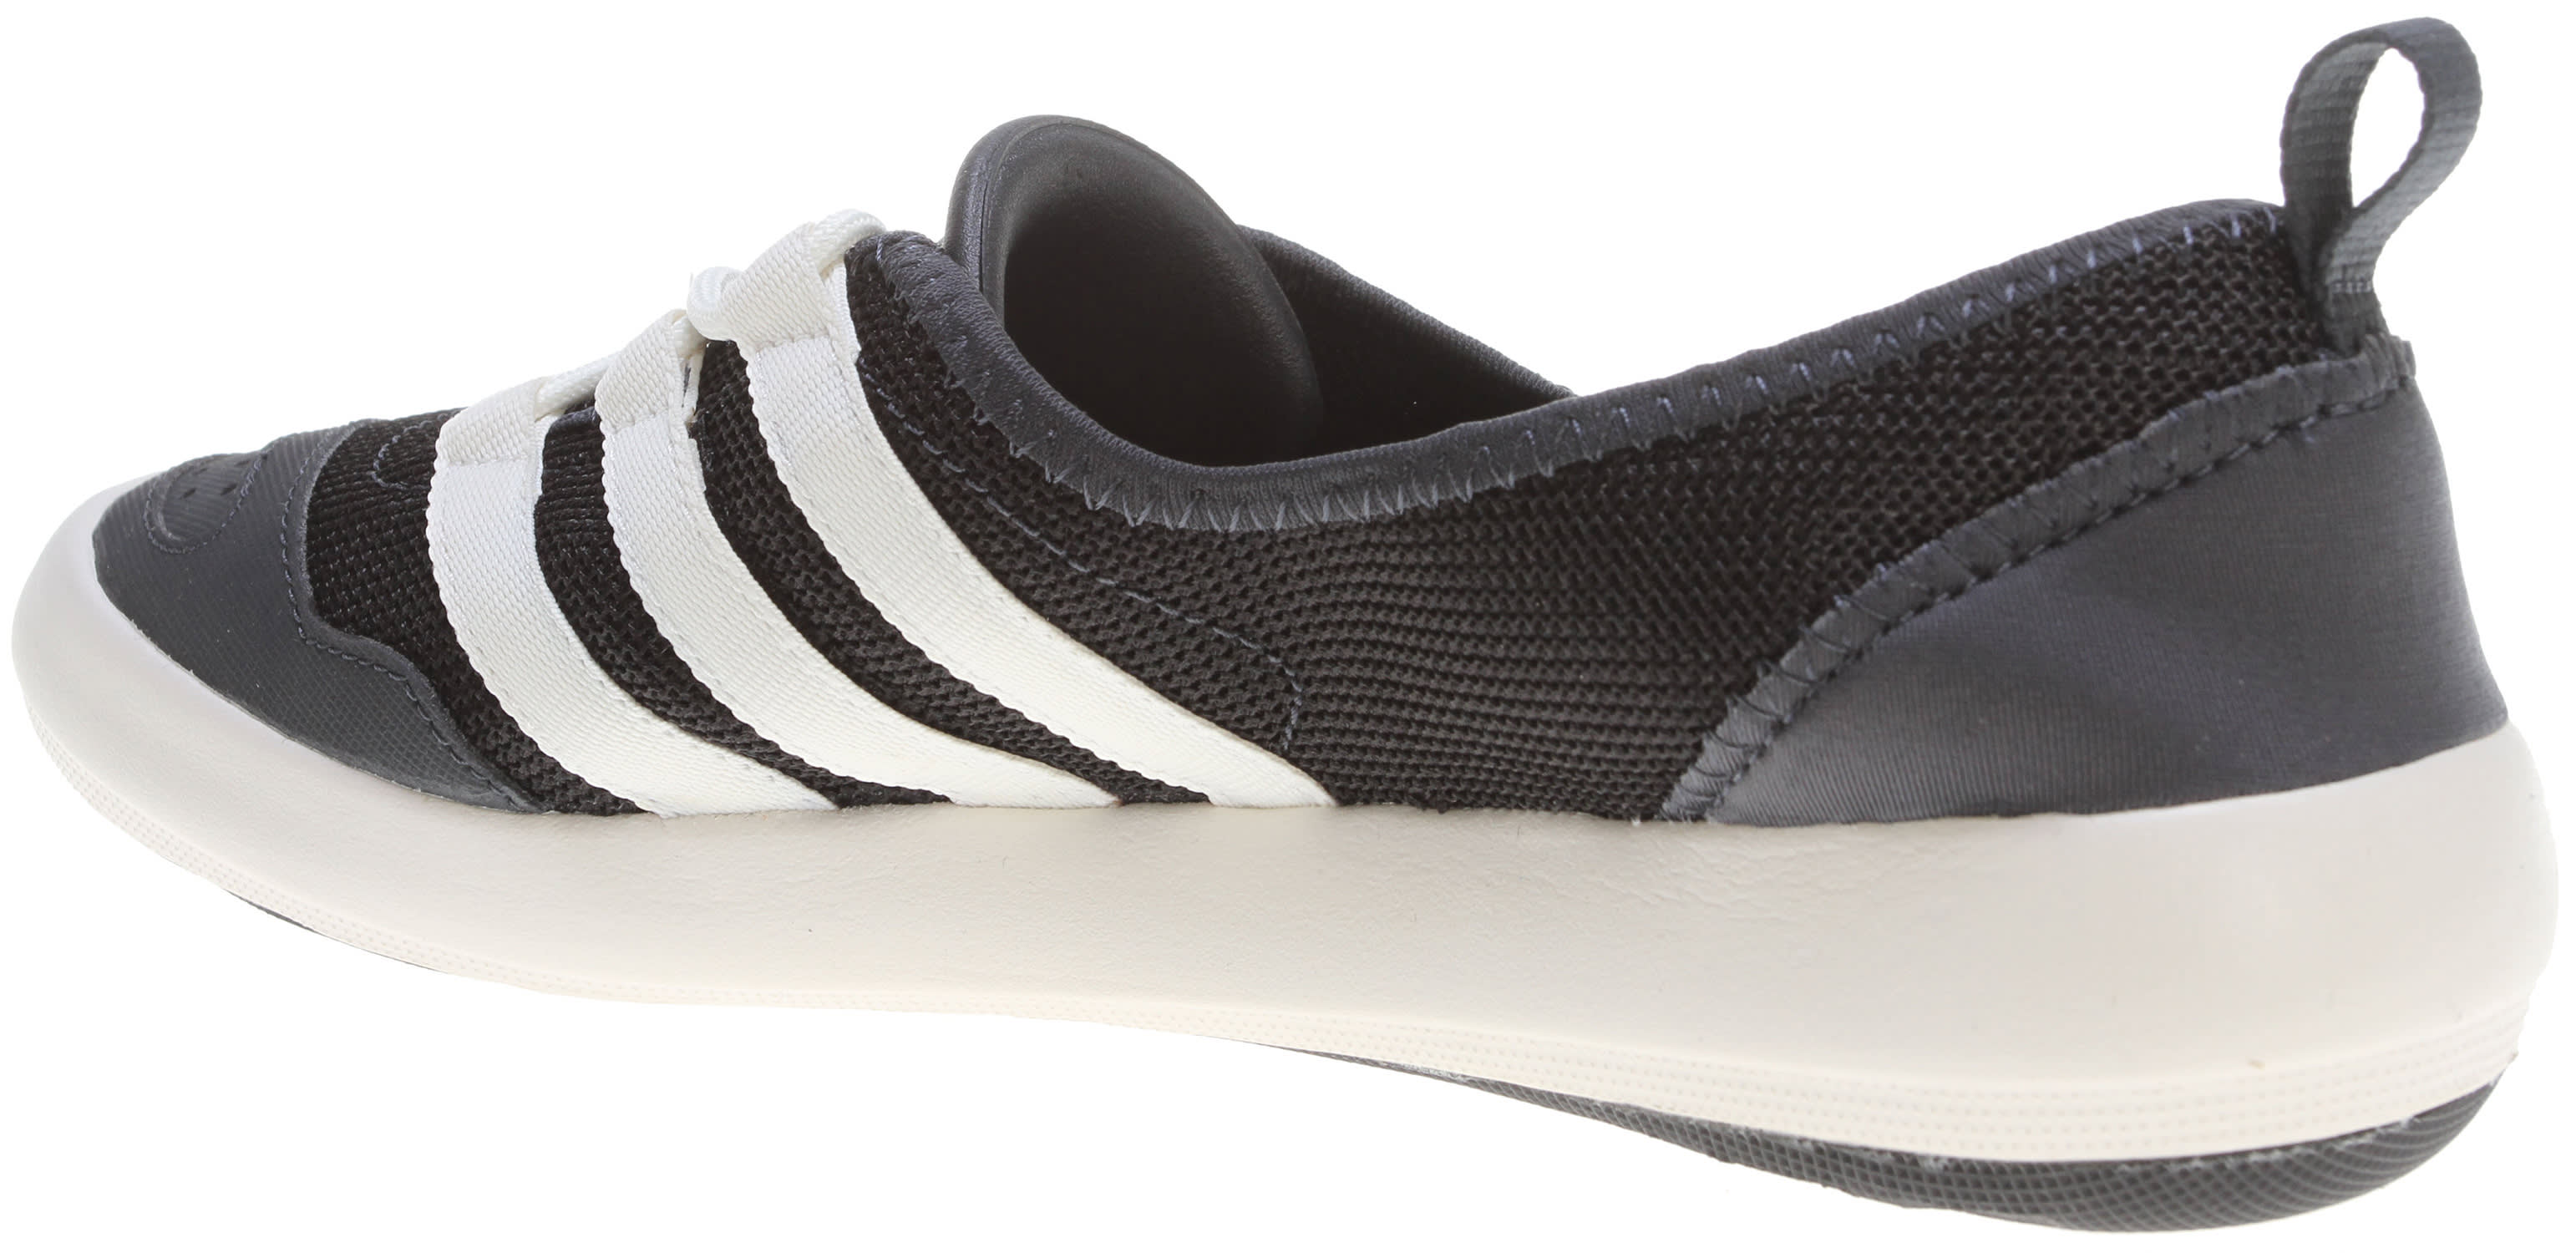 new concept a51c9 f09cc Adidas Climacool Boat Sleek Water Shoes - thumbnail 3